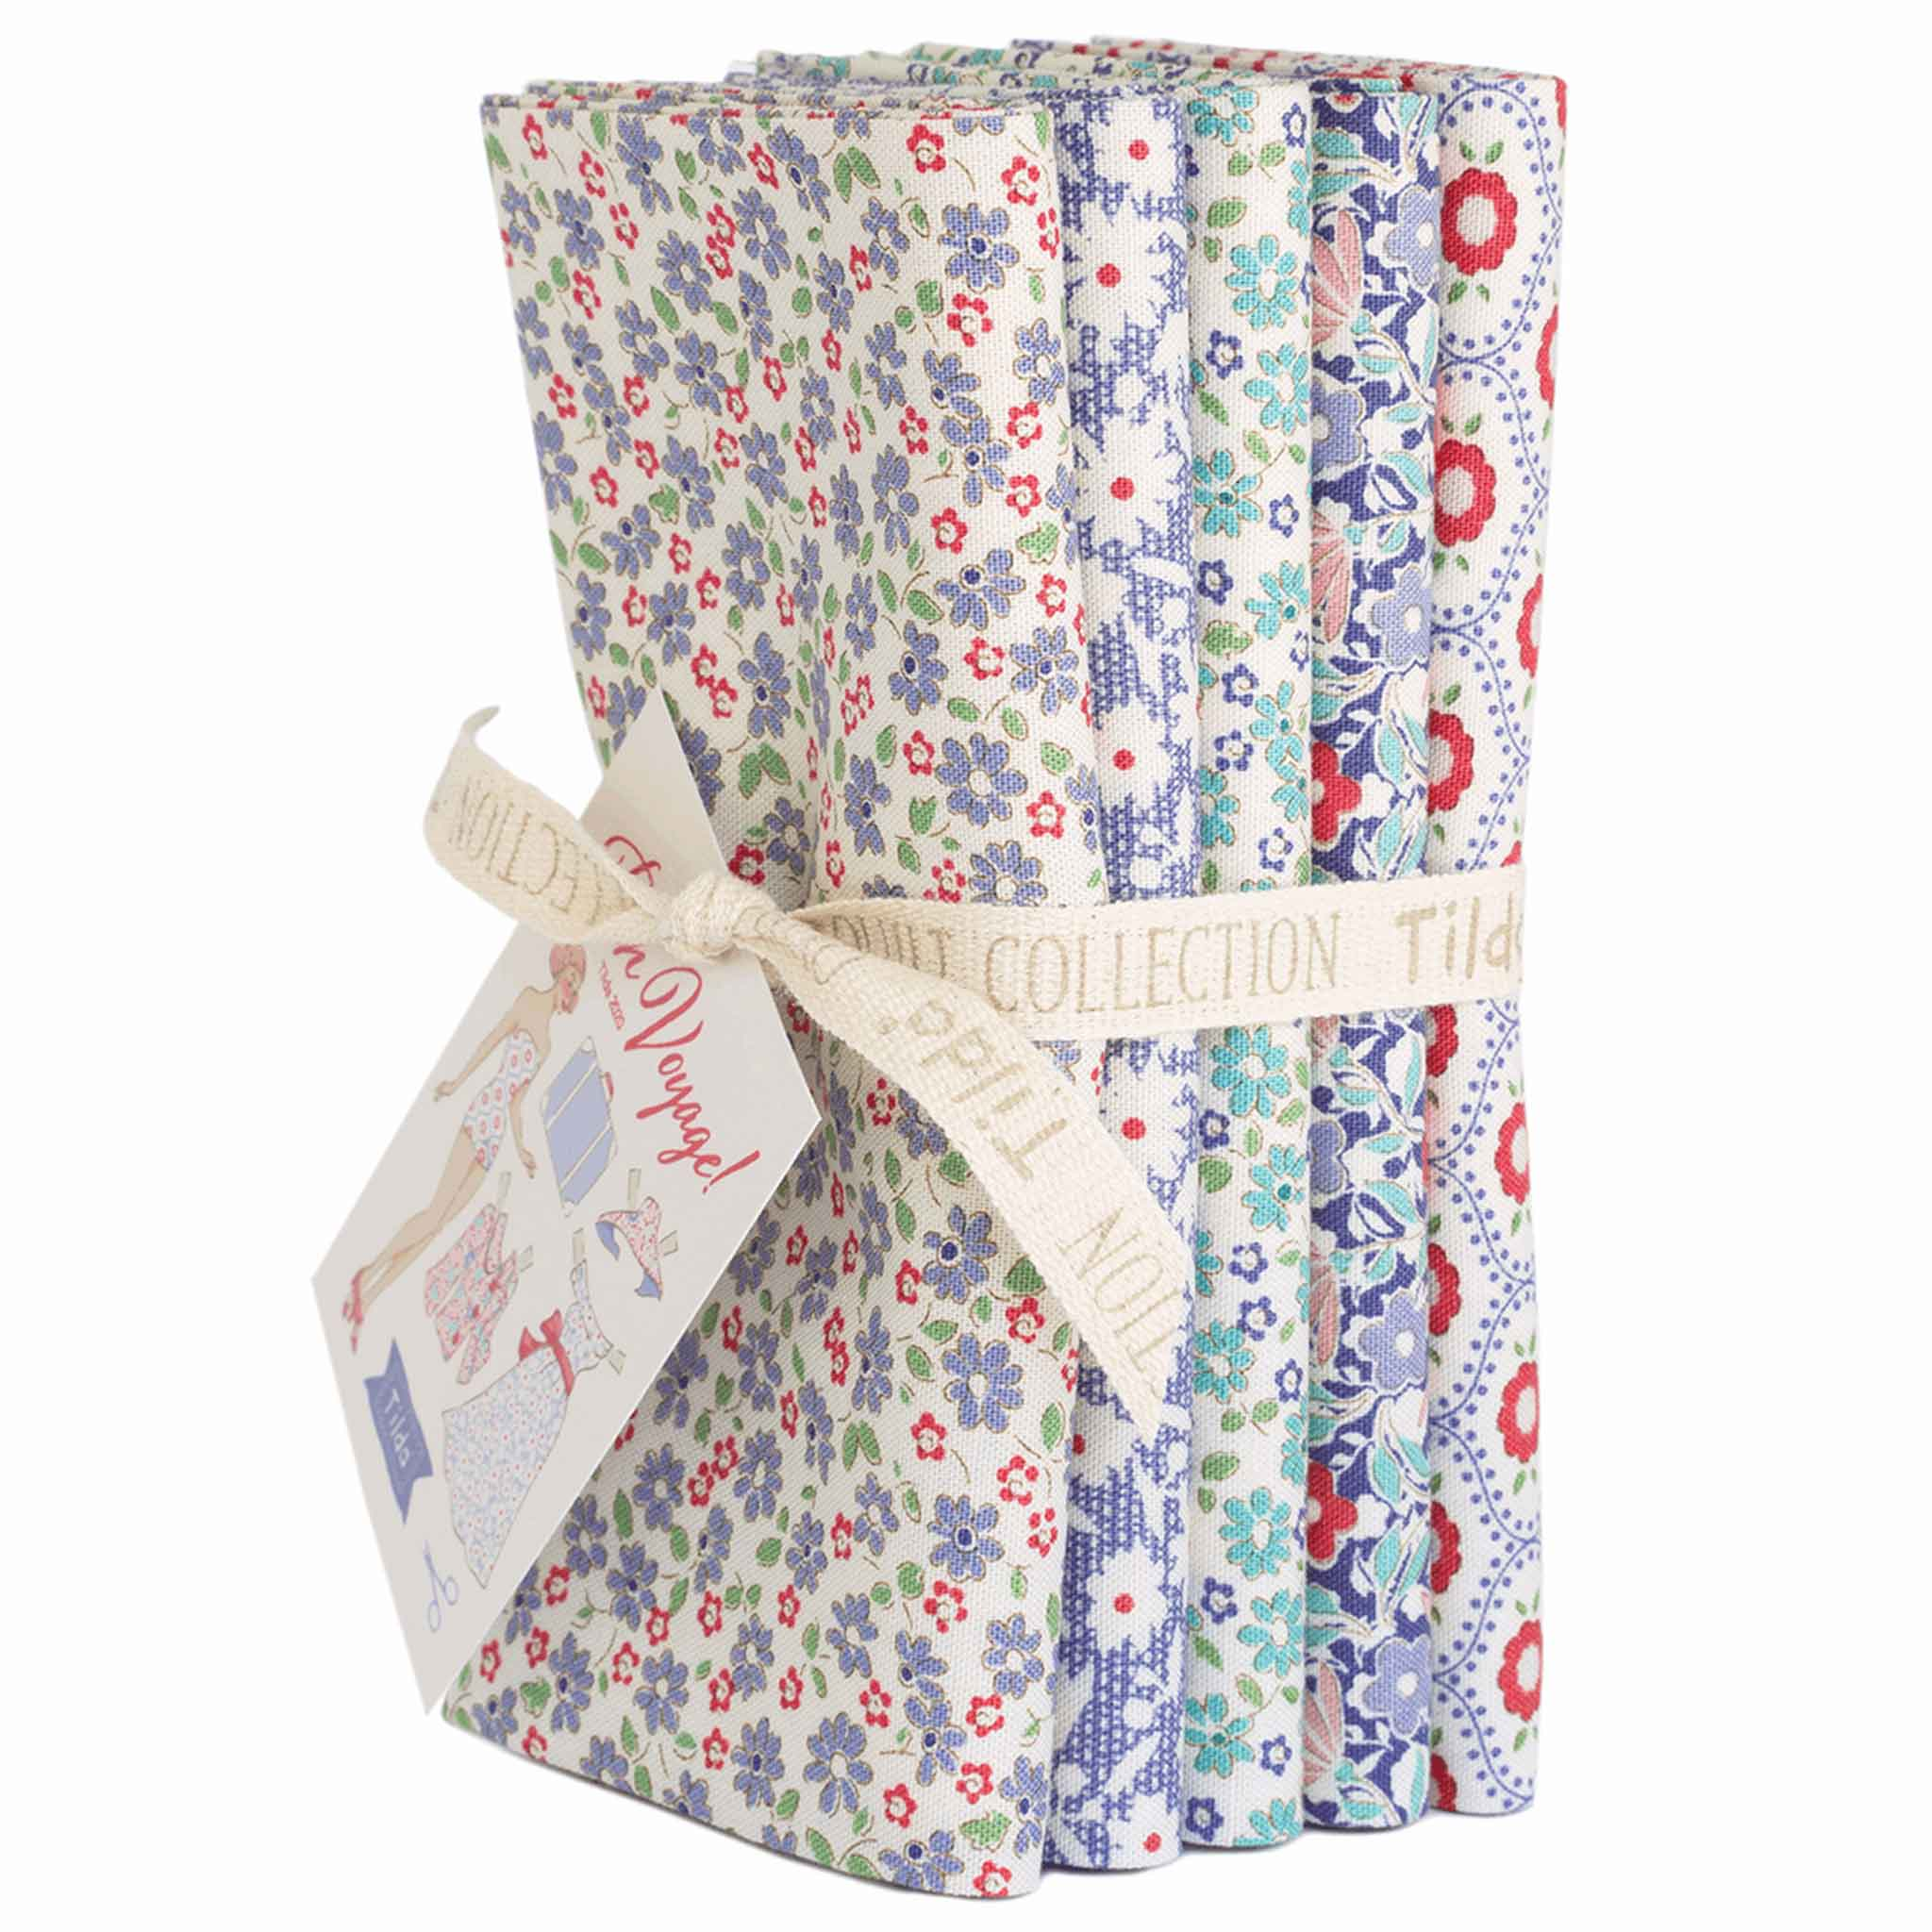 Tilda Small Blue Bon Voyage Fat Quarter Bundle, Tilda 300073, 5 Cotton Fat Quarters, 50 cm x 55 cm